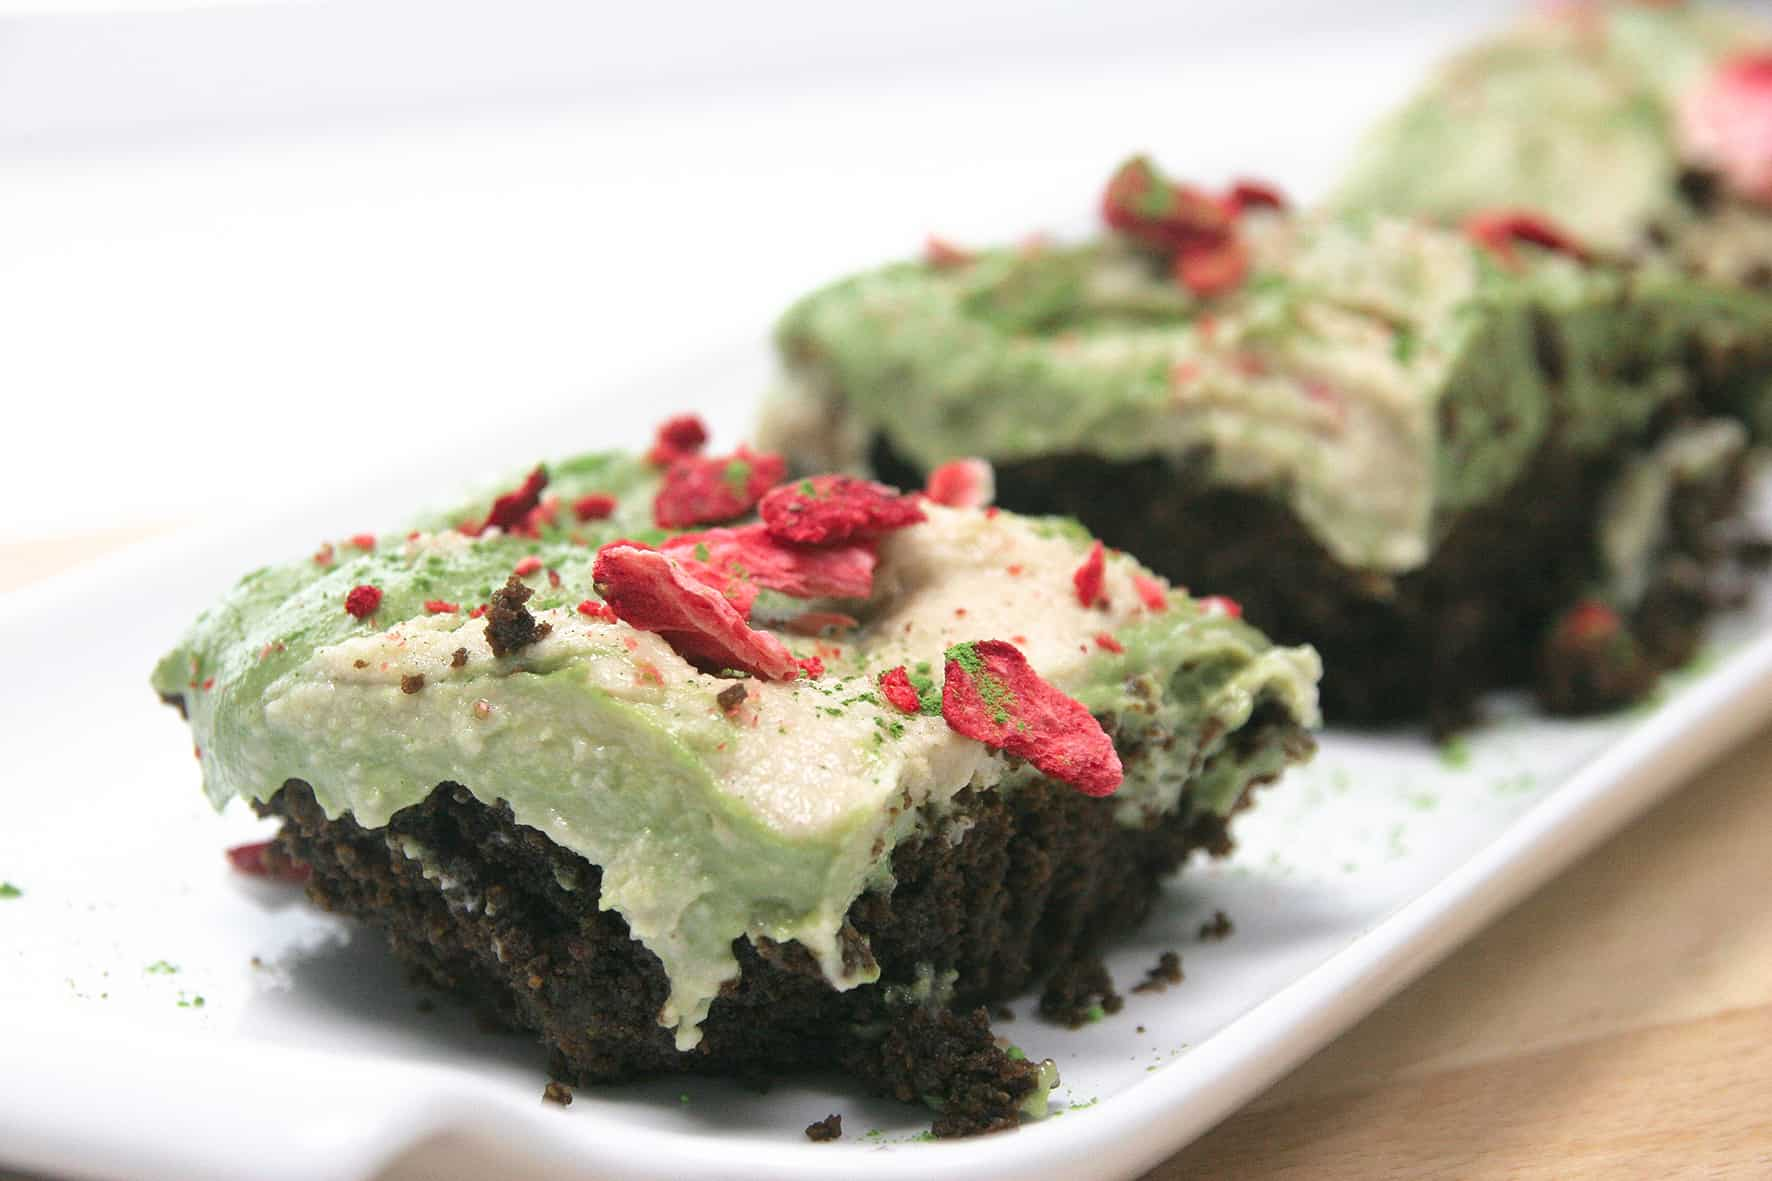 Gluten-free-chocolate-brownie-matcha-swirl-cream-cheese-frosting-2-recipe-dessert